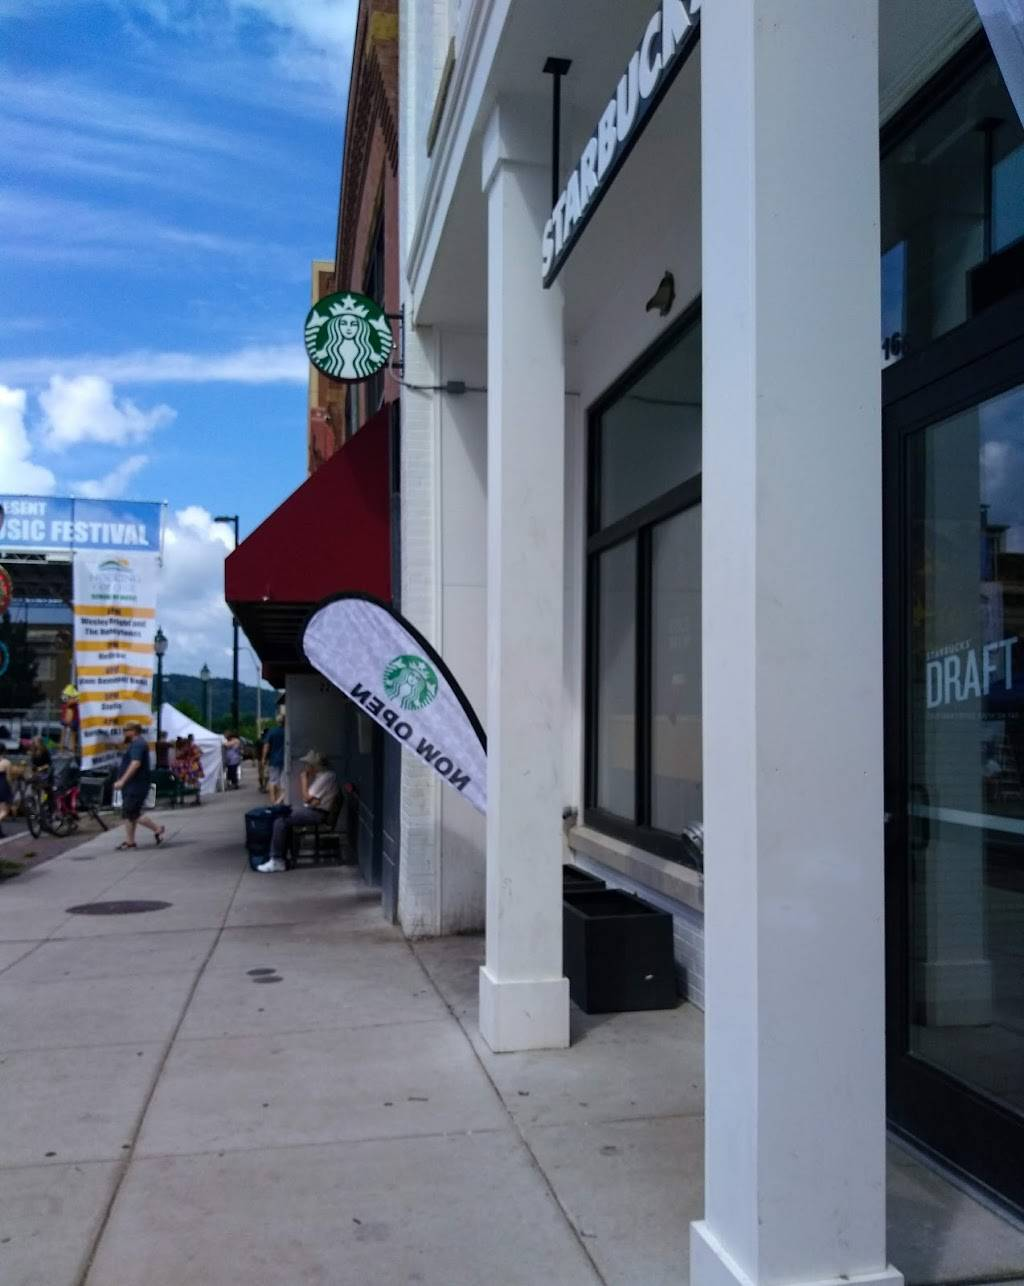 Starbucks   cafe   16 W Union St #101, Athens, OH 45701, USA   7405897095 OR +1 740-589-7095